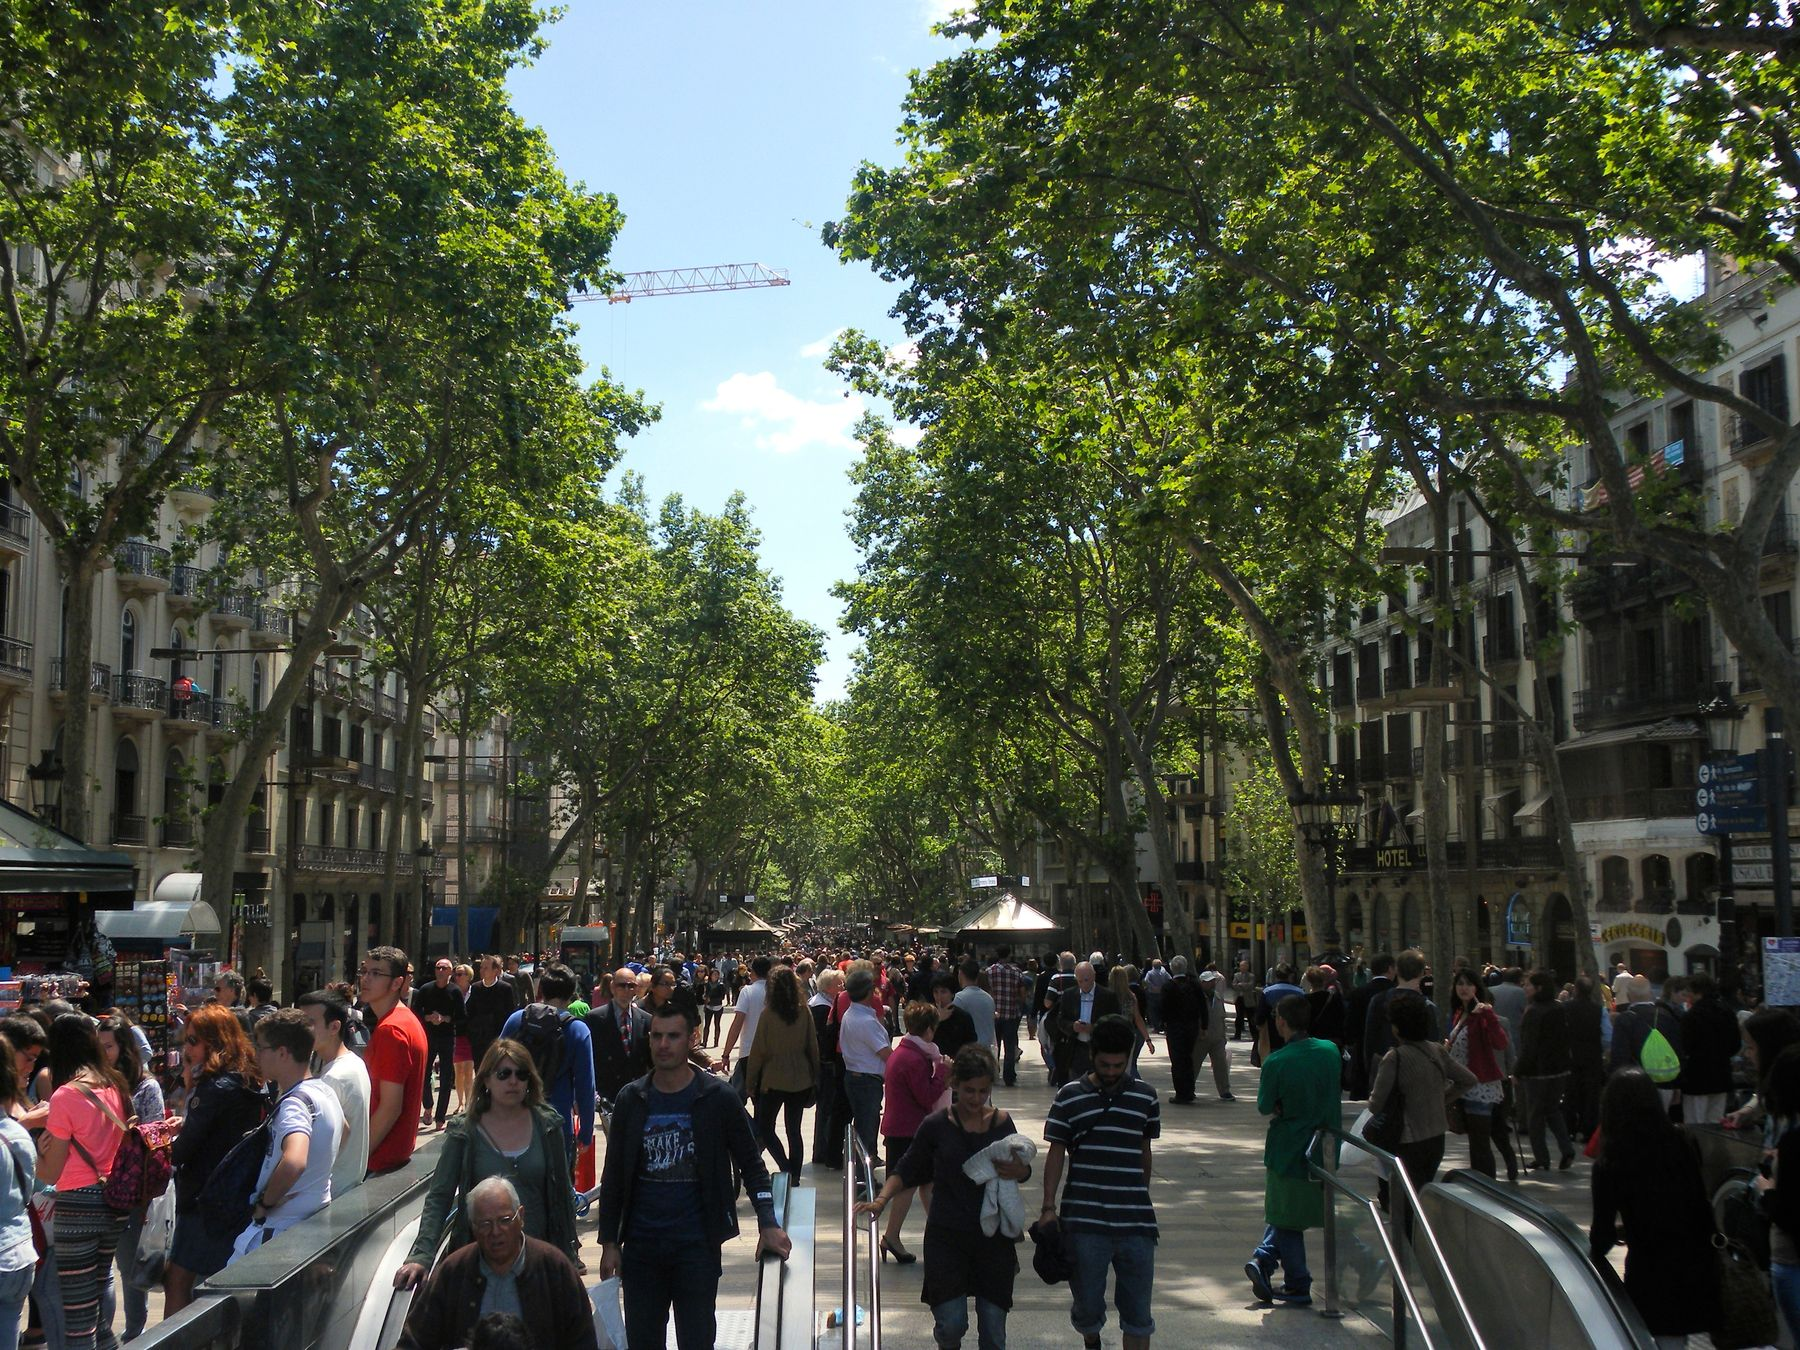 Daytime view of Las Ramblas, crowded with people and lined by trees and buildings